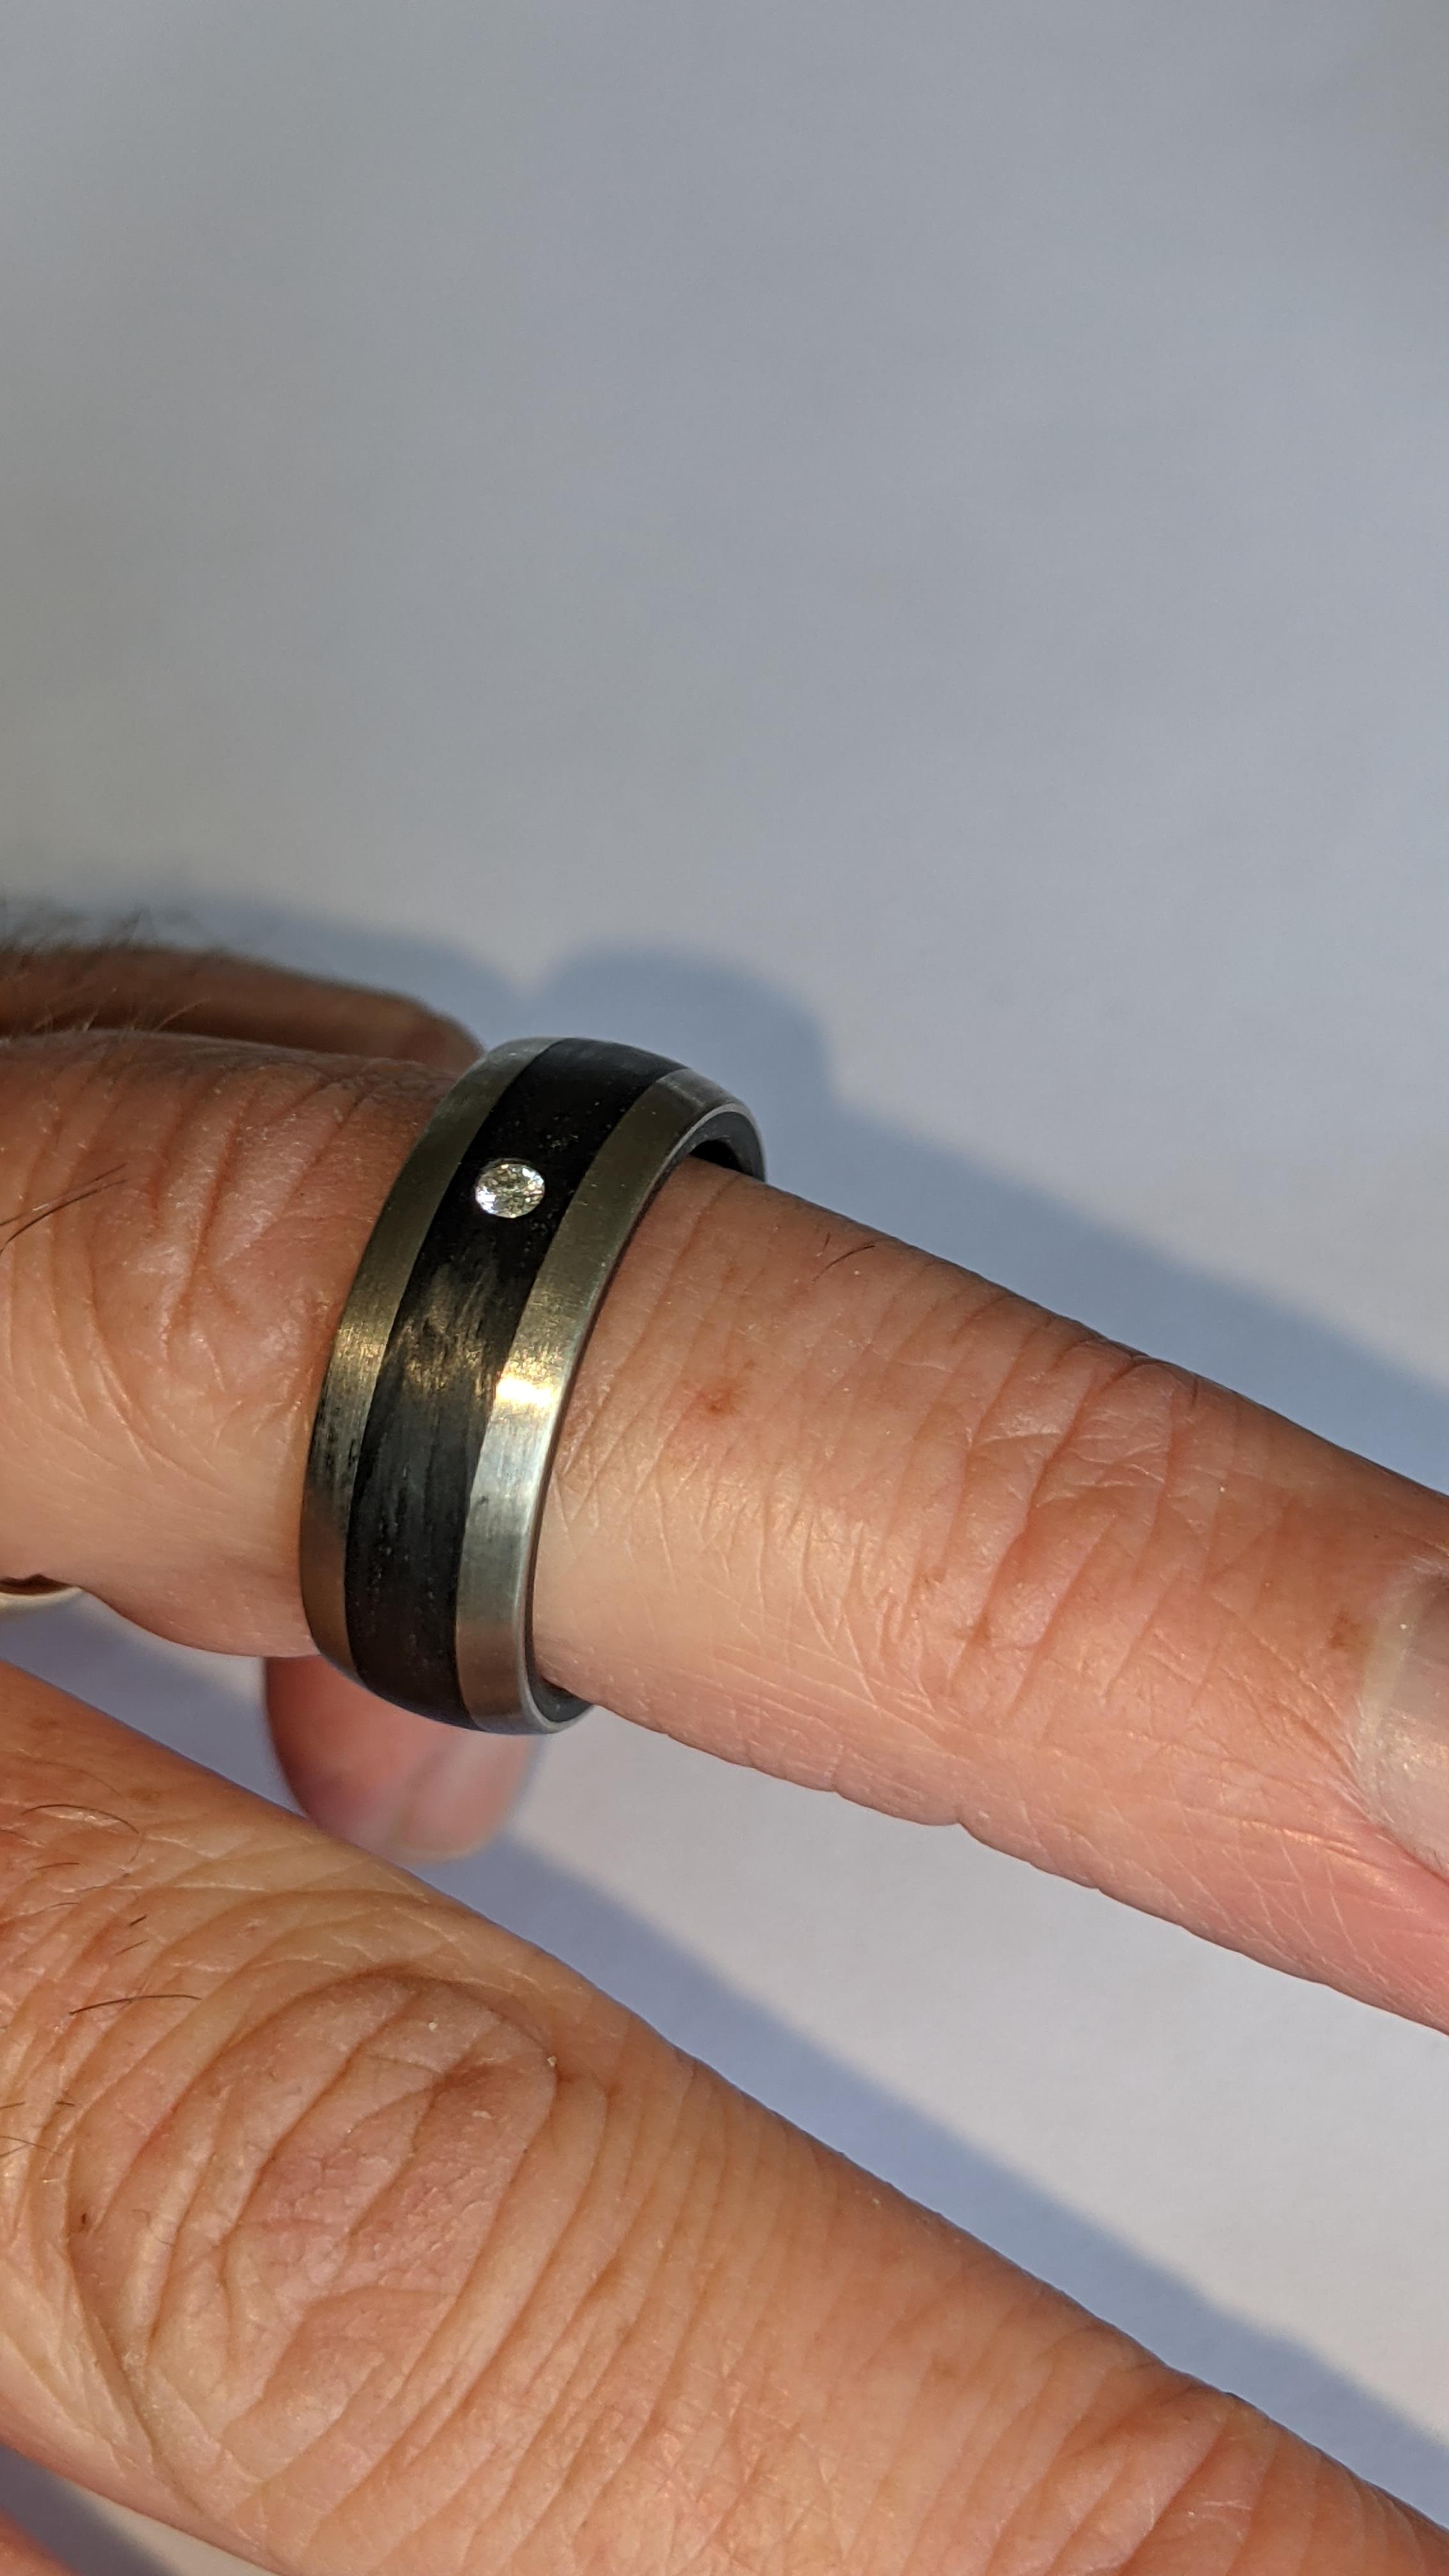 Ring understood to be made of Palladium, carbon & diamond - no price sticker or labelling on this ri - Image 12 of 13